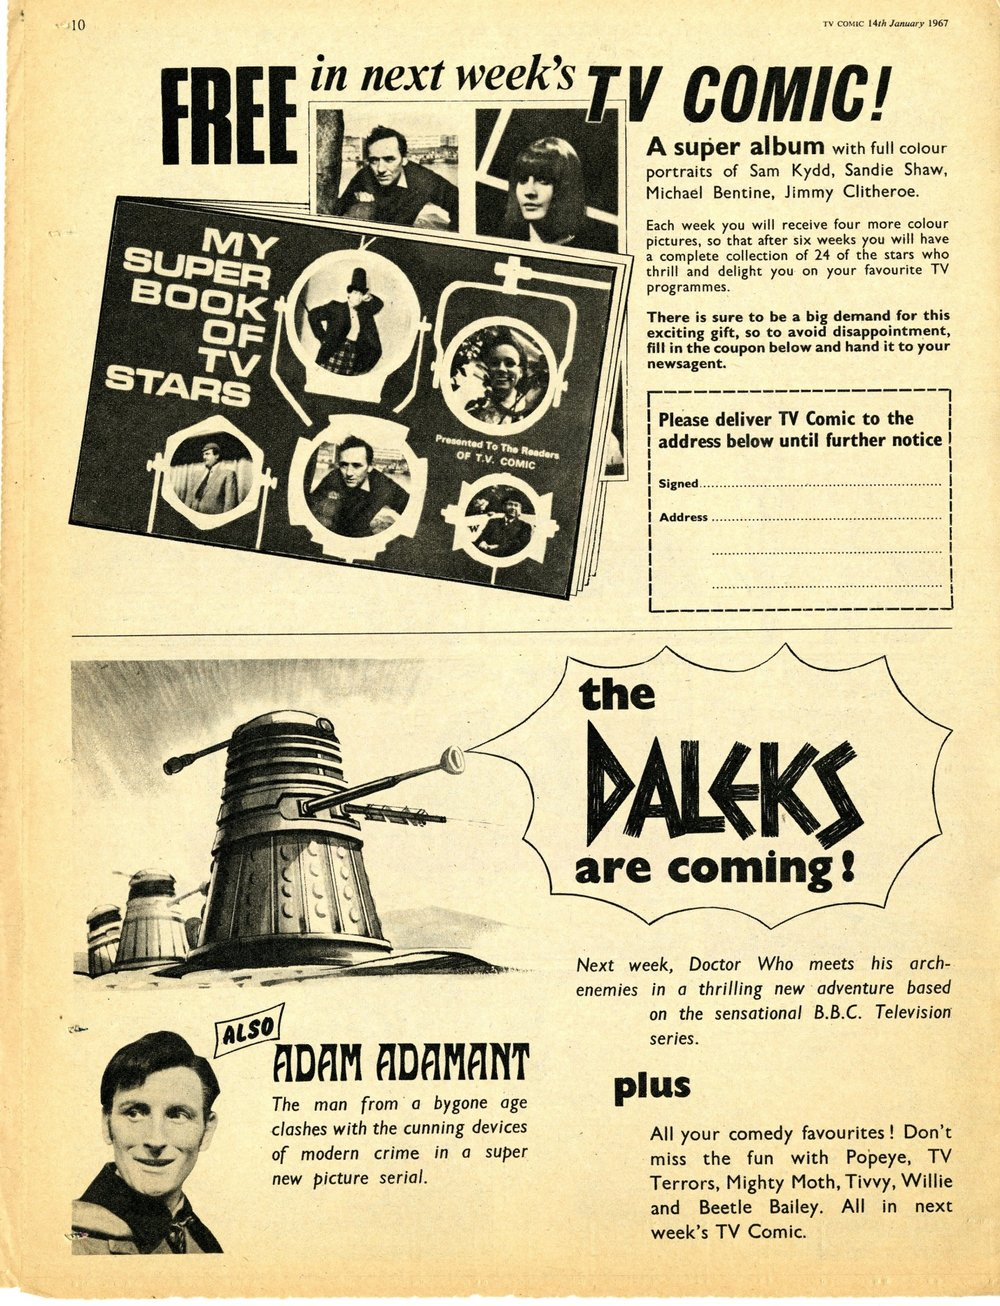 Preview of the Daleks' appearance in TV Comic and an ad. for My Super Book of TV Stars, TV Comic number 787, 14 January 1967